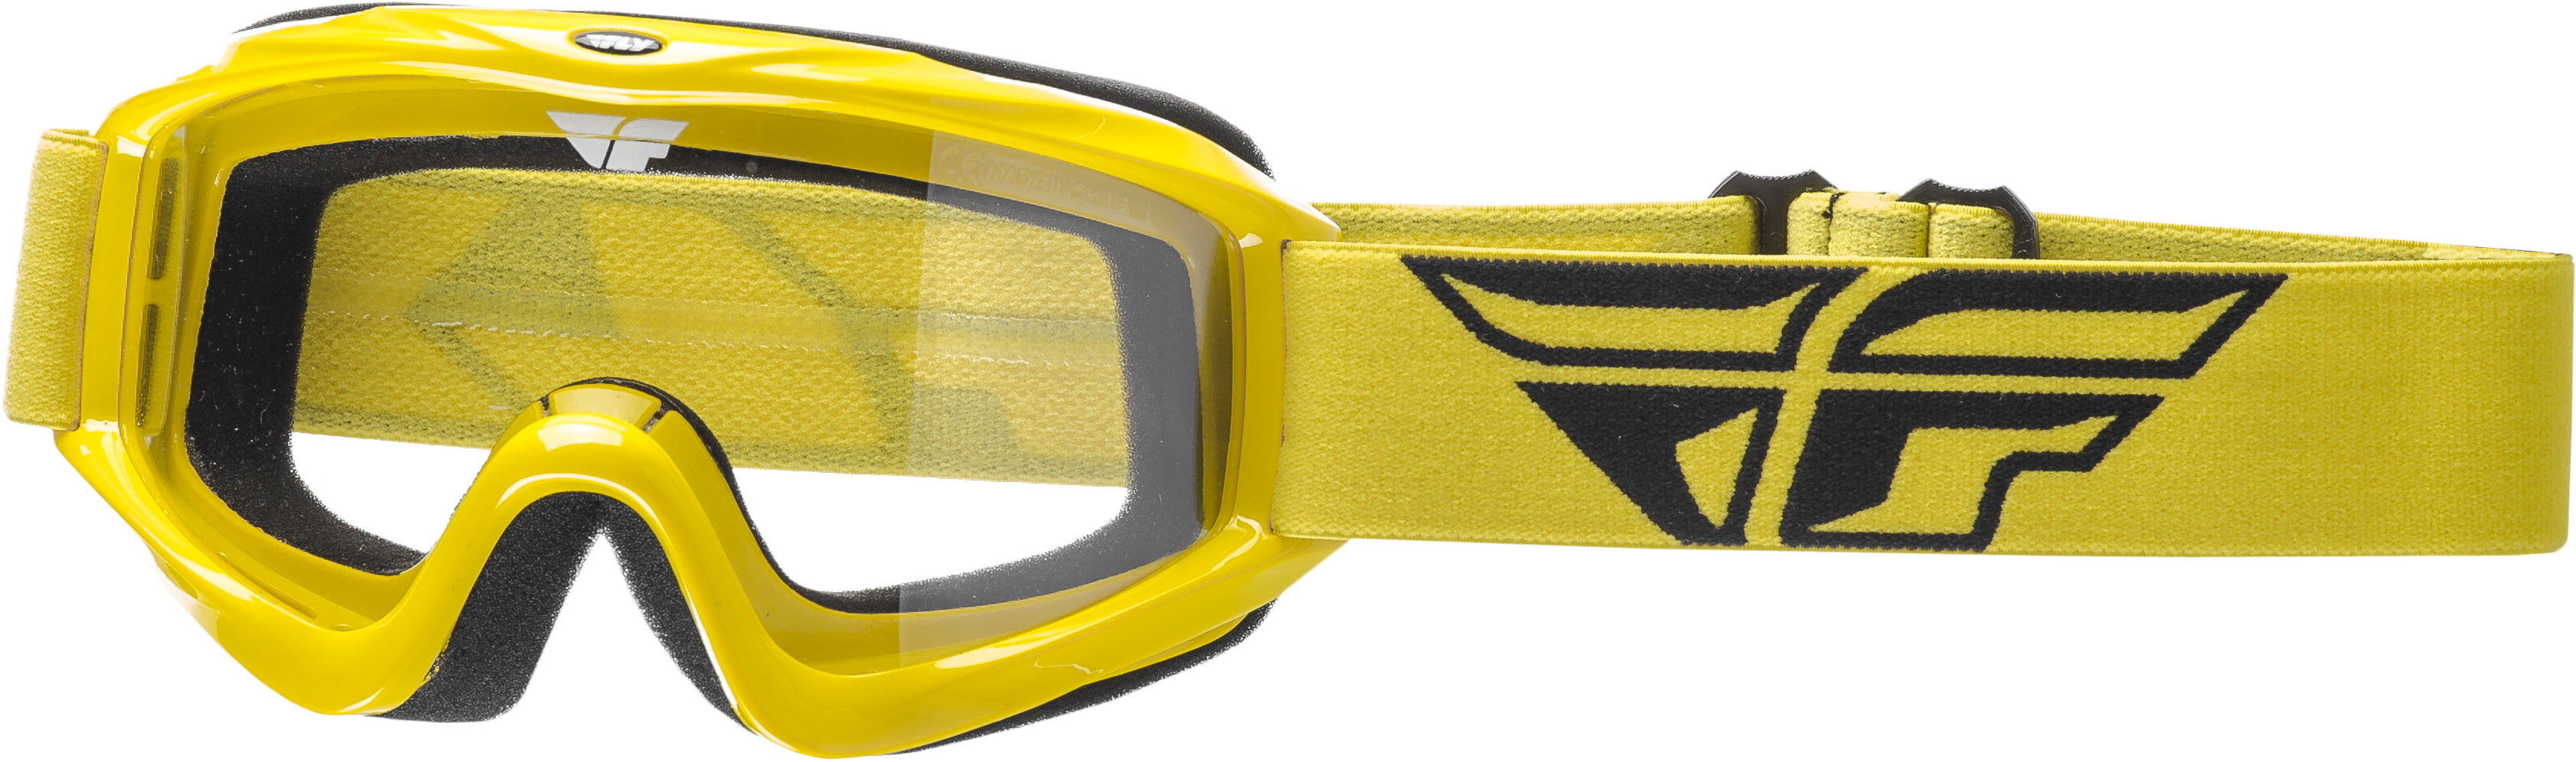 Focus Goggle Yellow W/ Clear Lens